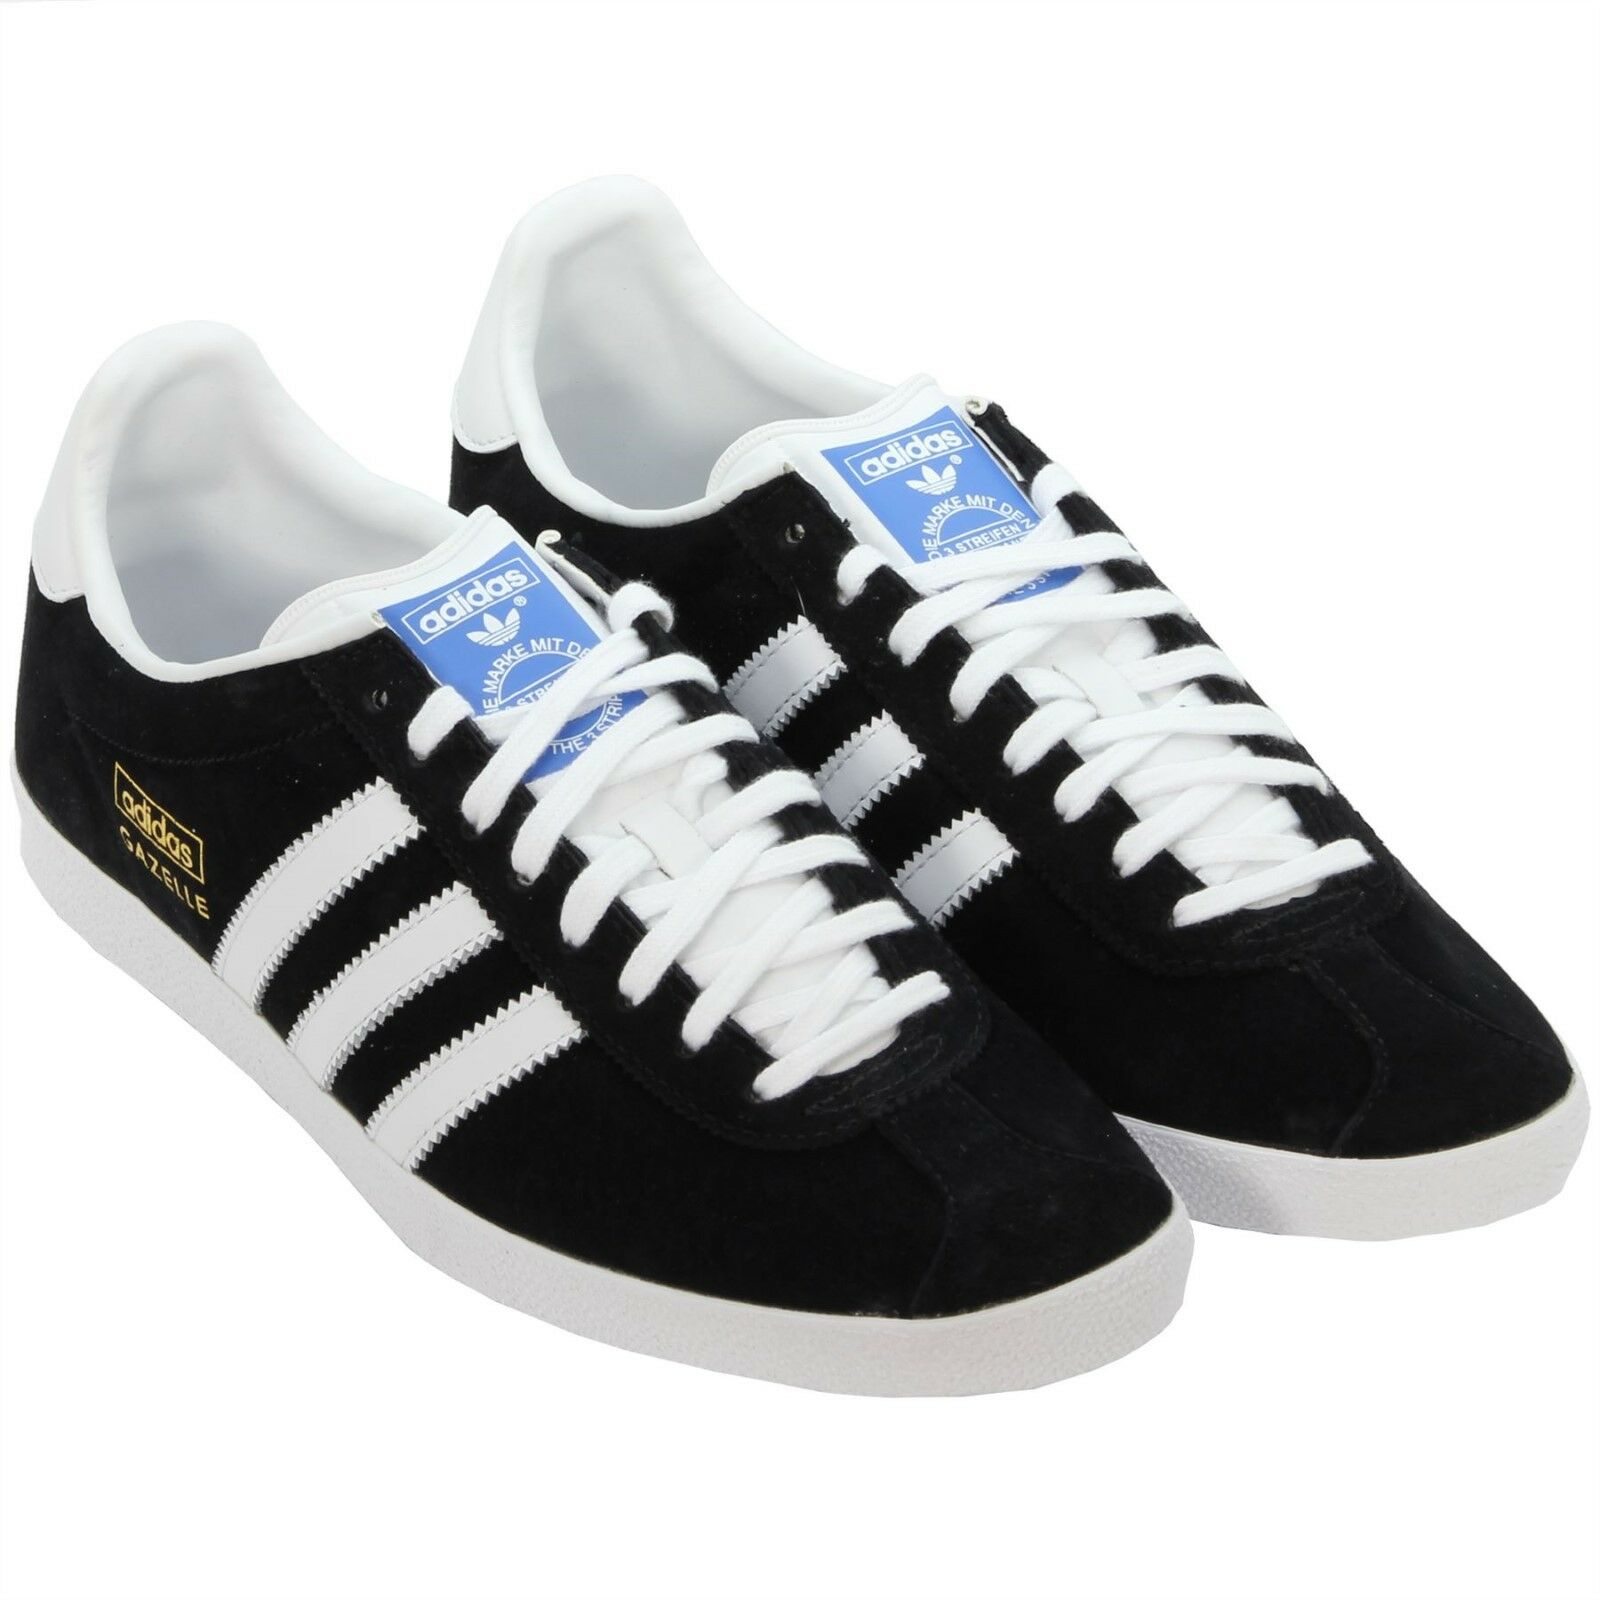 admiración asqueroso Deudor  GENUINE ADIDAS ORIGINALS GAZELLE MENS TRAINERS BLACK NUBUCK SUEDE UK SIZE 7  - 11 for sale online